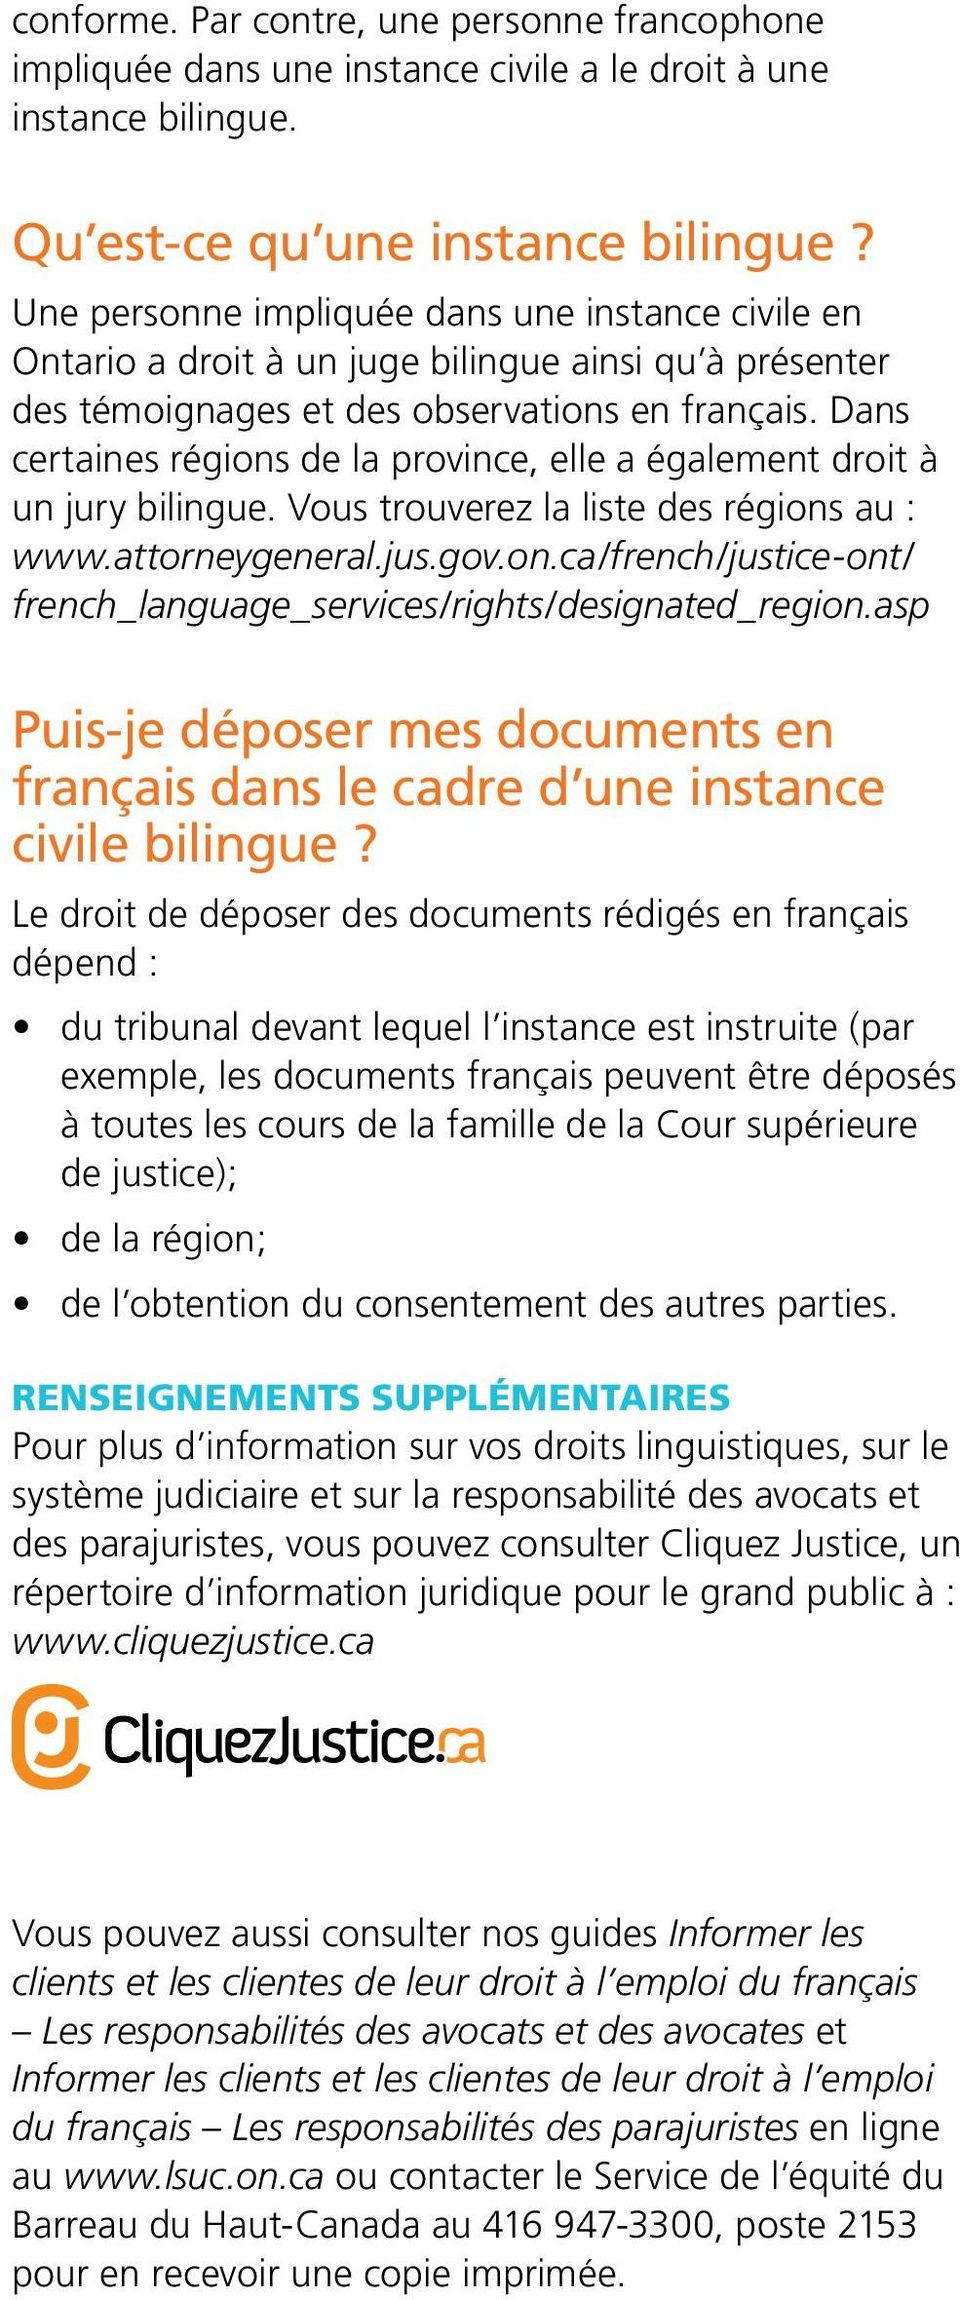 Dans certaines régions de la province, elle a également droit à un jury bilingue. Vous trouverez la liste des régions au : www.attorneygeneral.jus.gov.on.ca/french/justice-ont/ french_language_services/rights/designated_region.